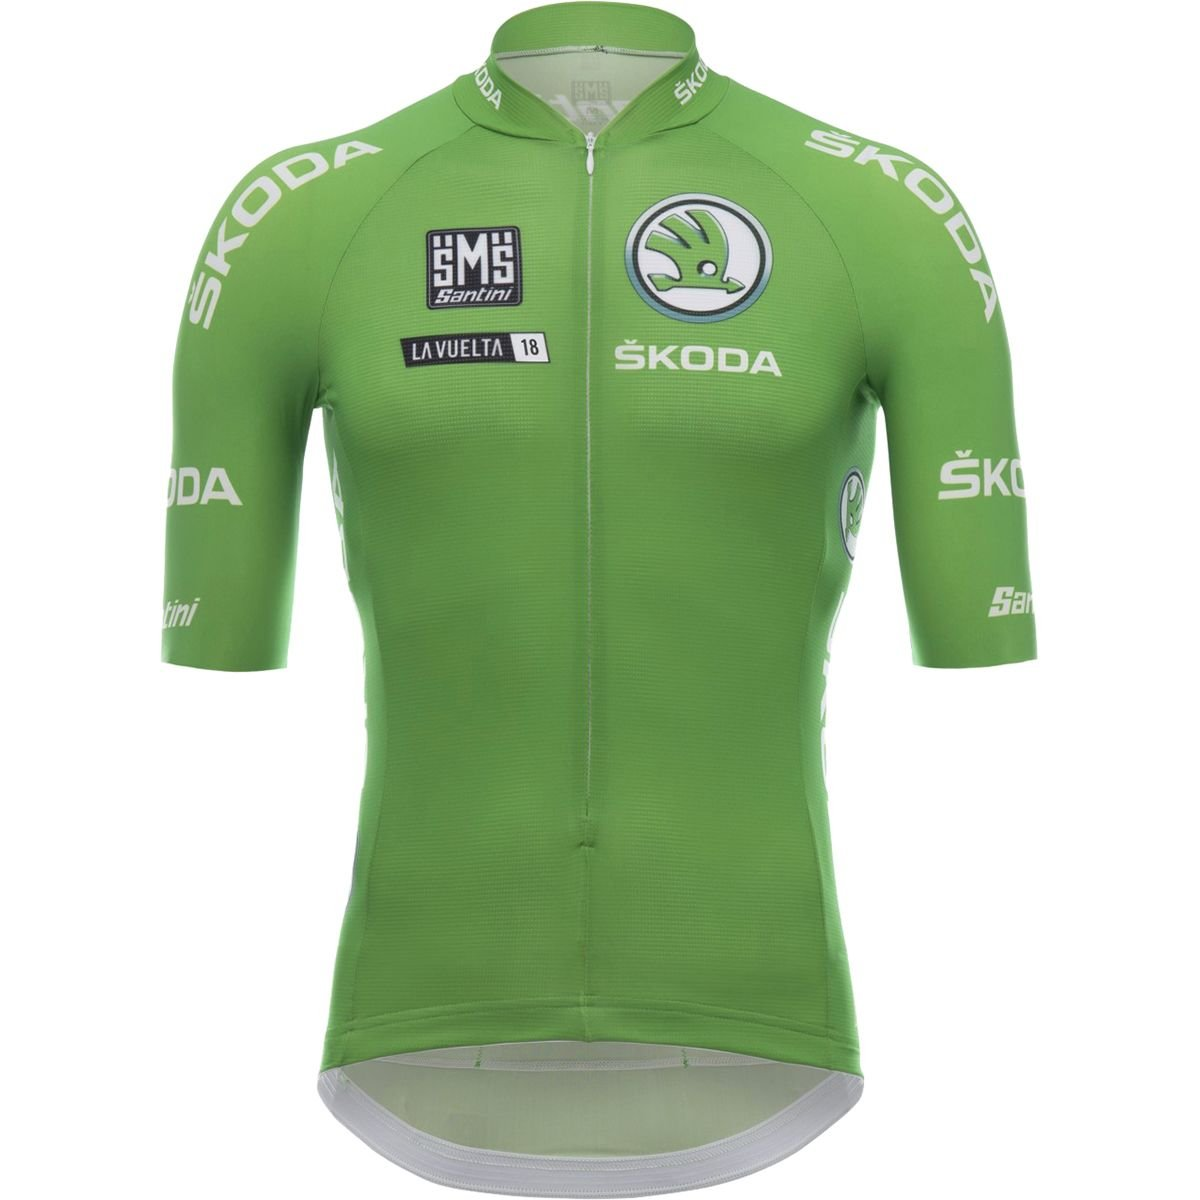 早割クーポン! Santini La La Vueltaスプリンター分類Jersey – Men 's Men Medium Medium グリーン B07FFB1XD1, カミサトマチ:a1cb8b02 --- martinemoeykens-com.access.secure-ssl-servers.info